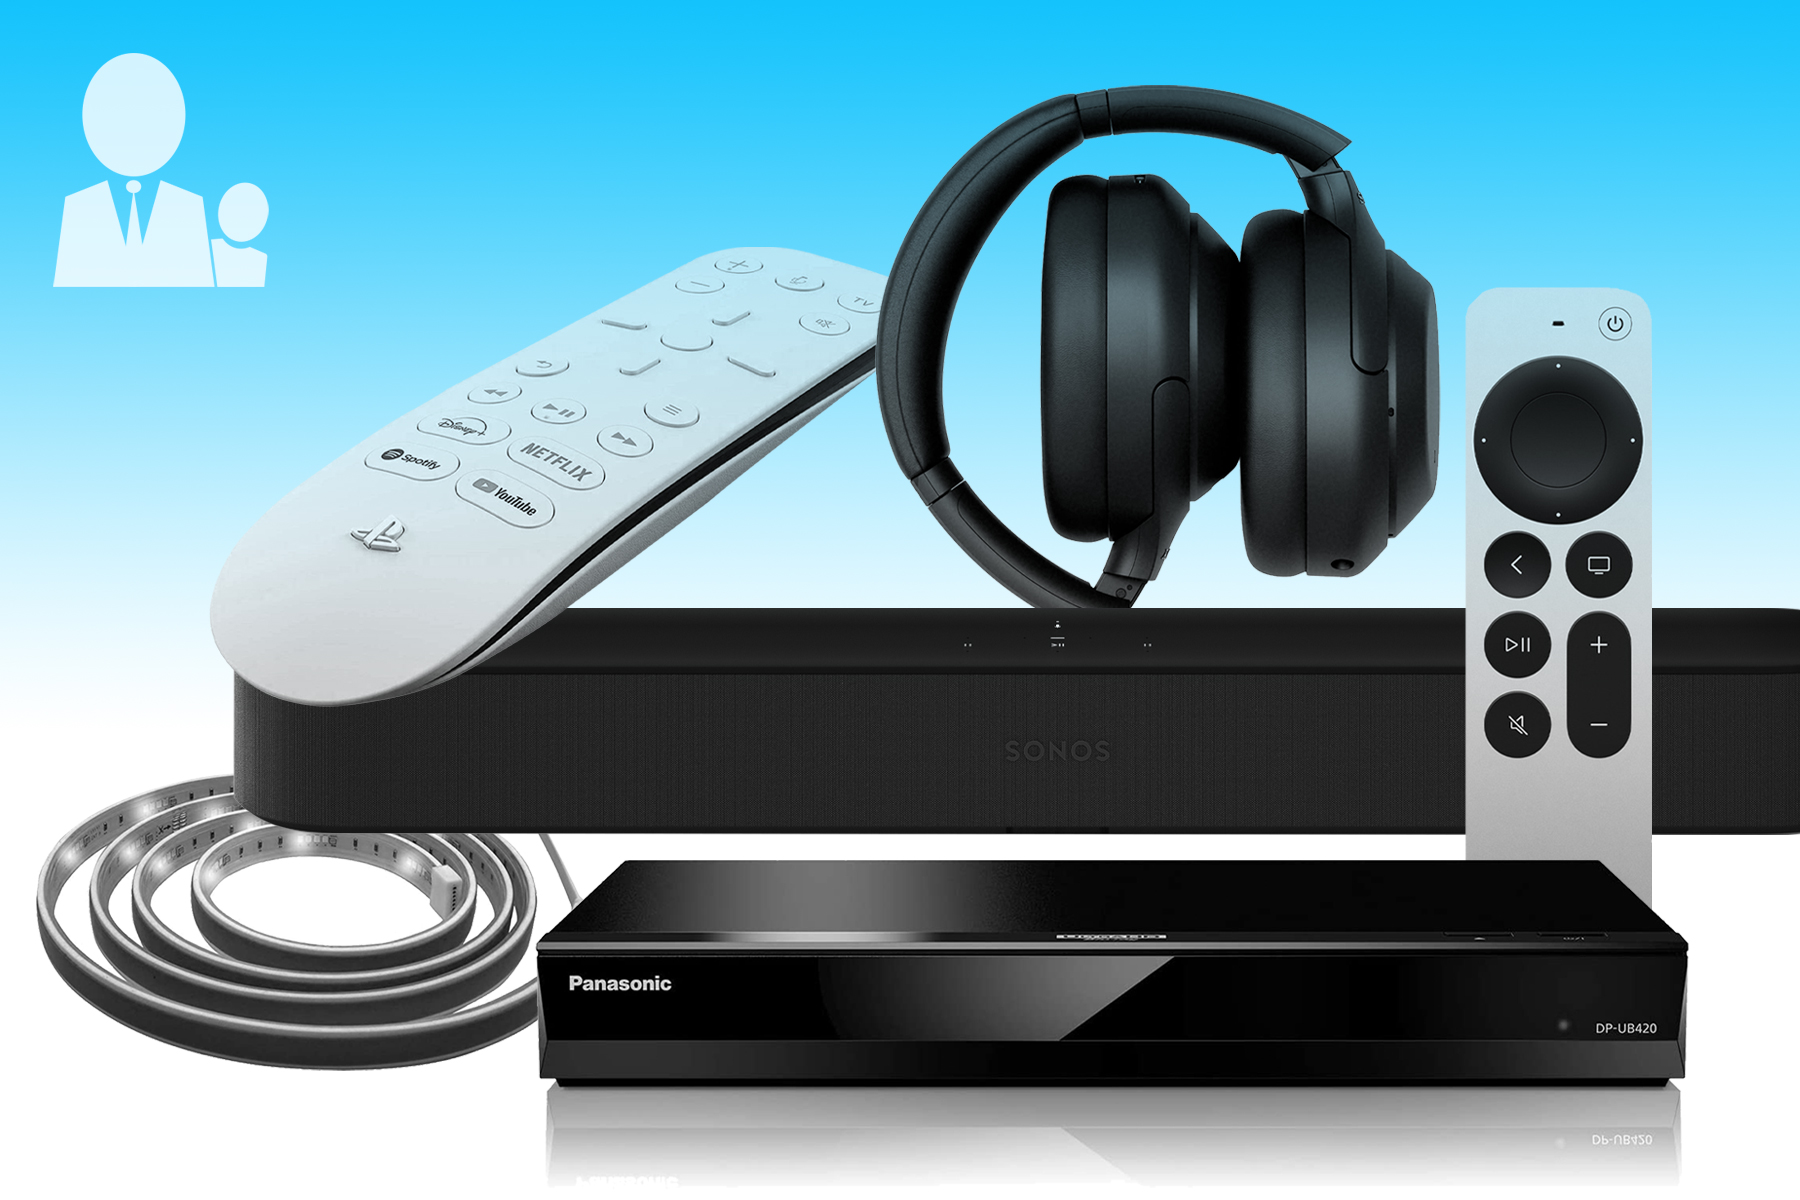 The best home entertainment gift ideas for dad